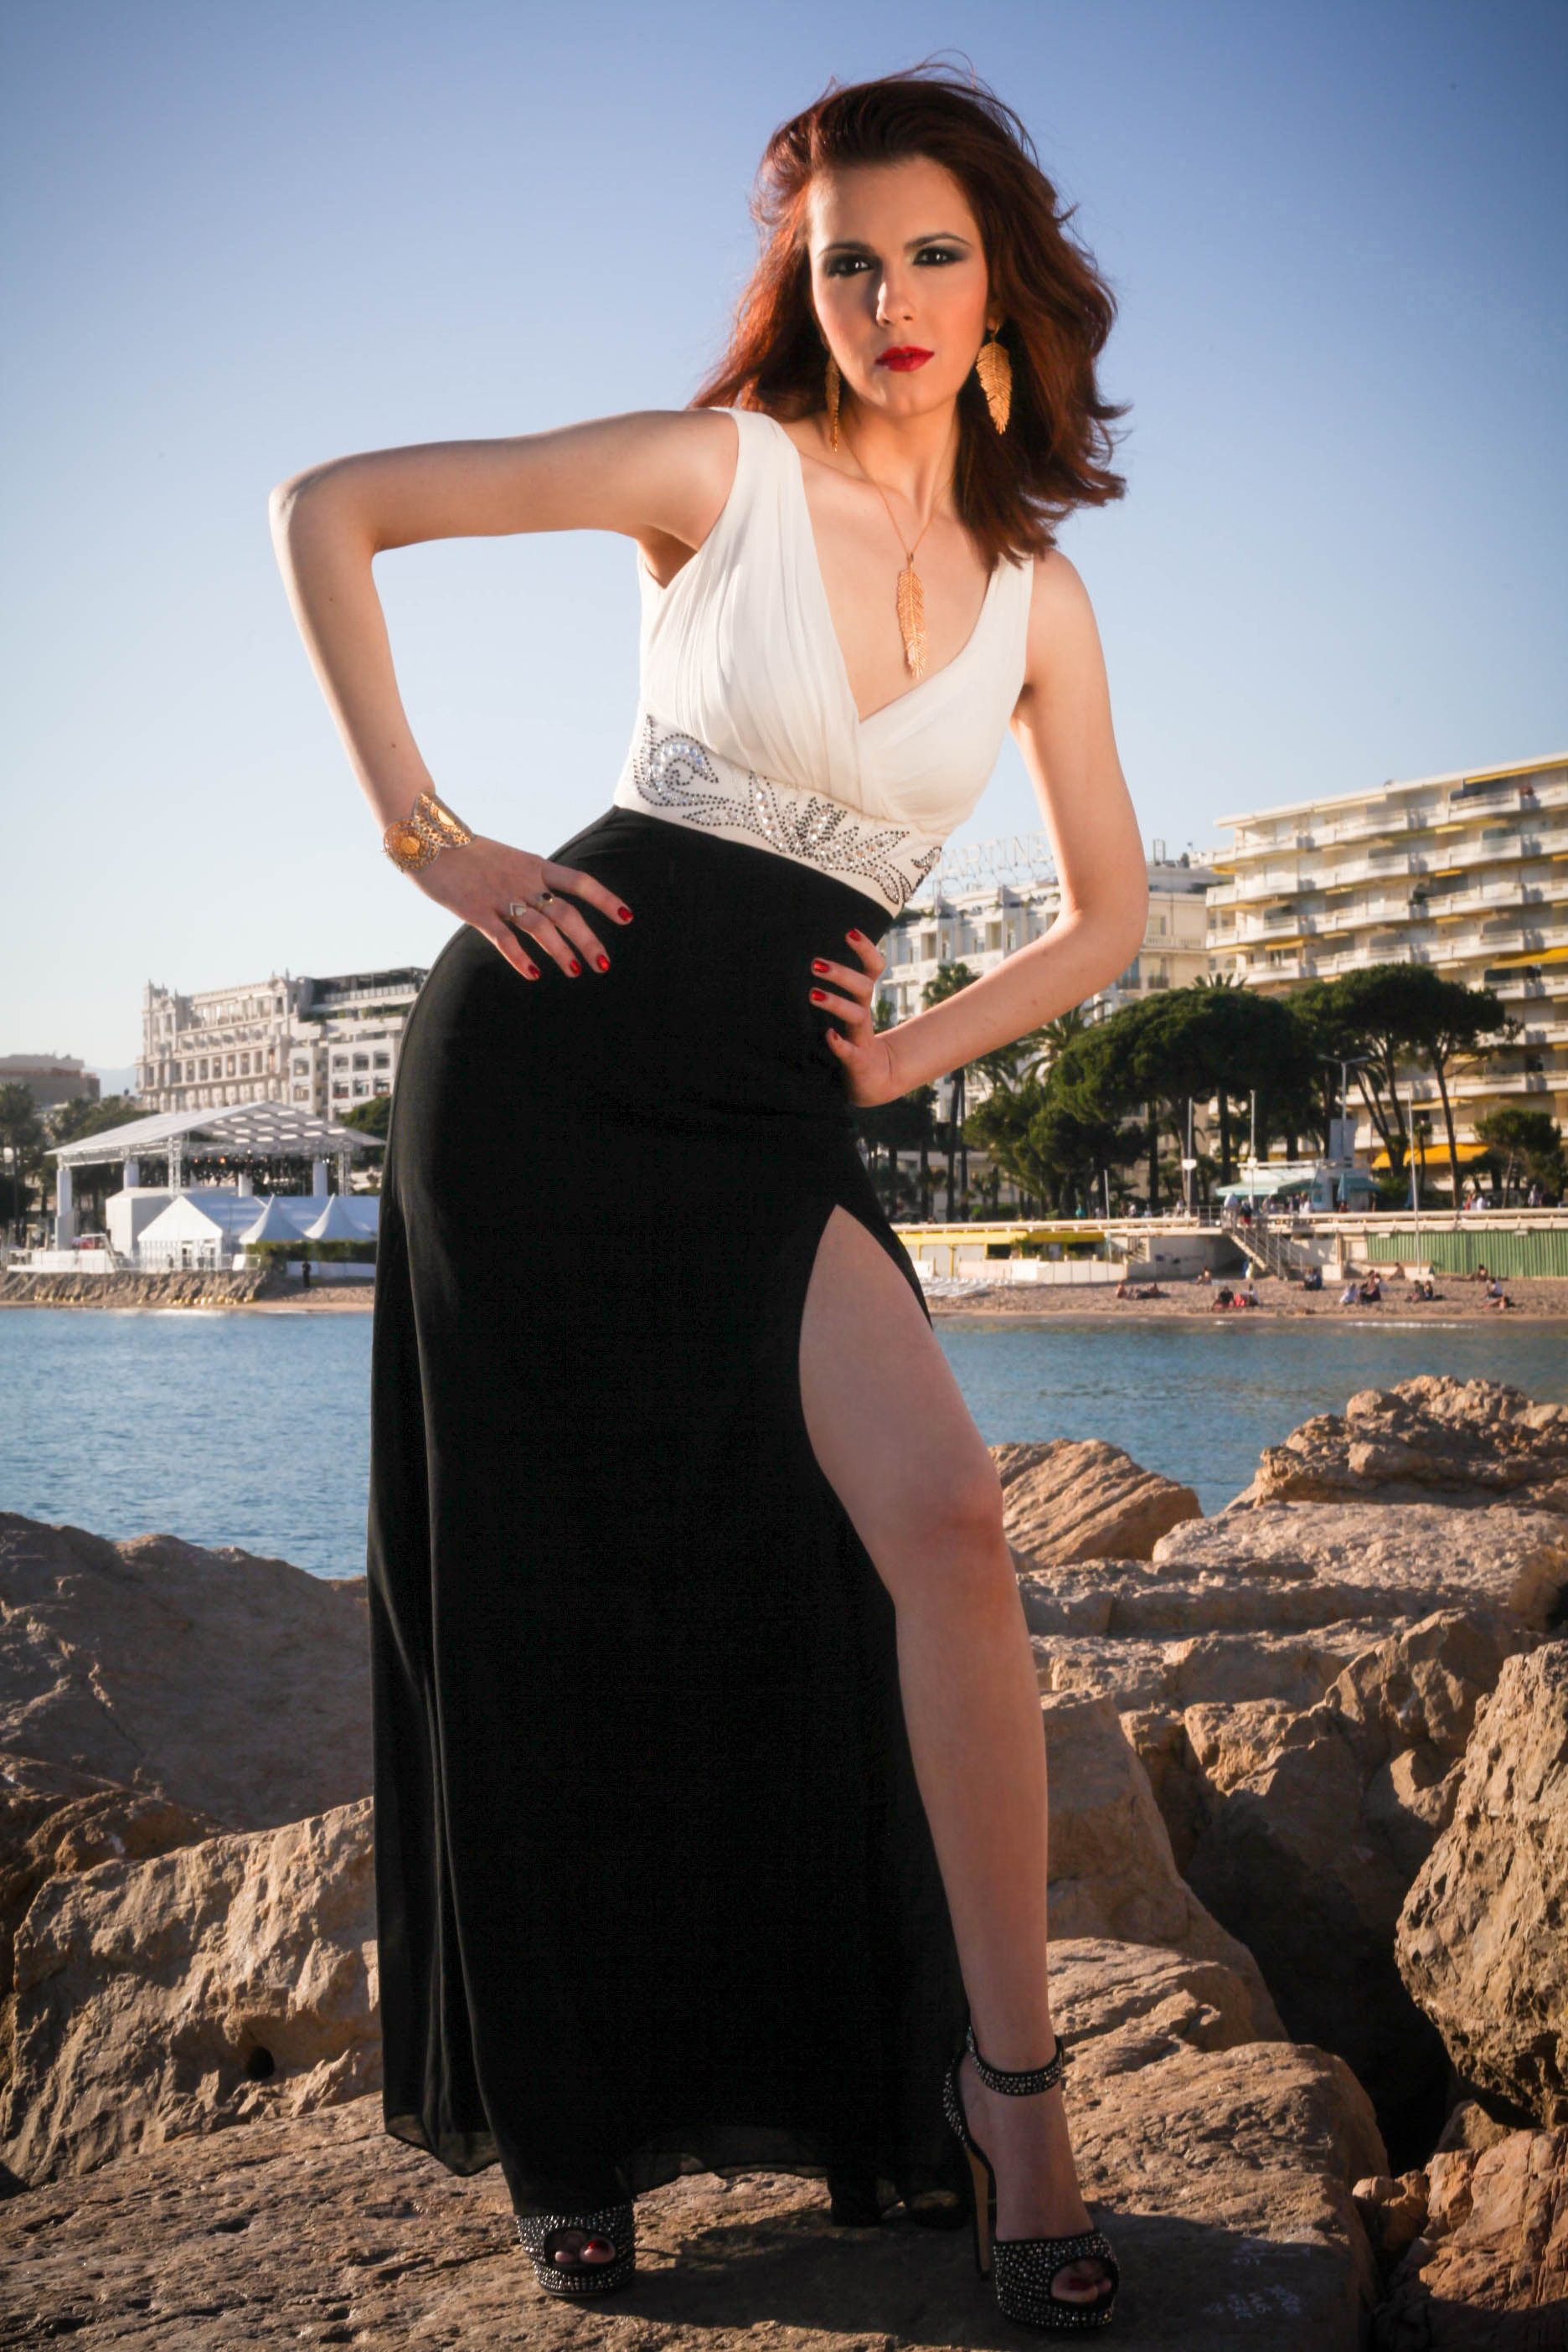 Cannes Promenade Photo Shoot May 2015 Professional Photo (74).jpg